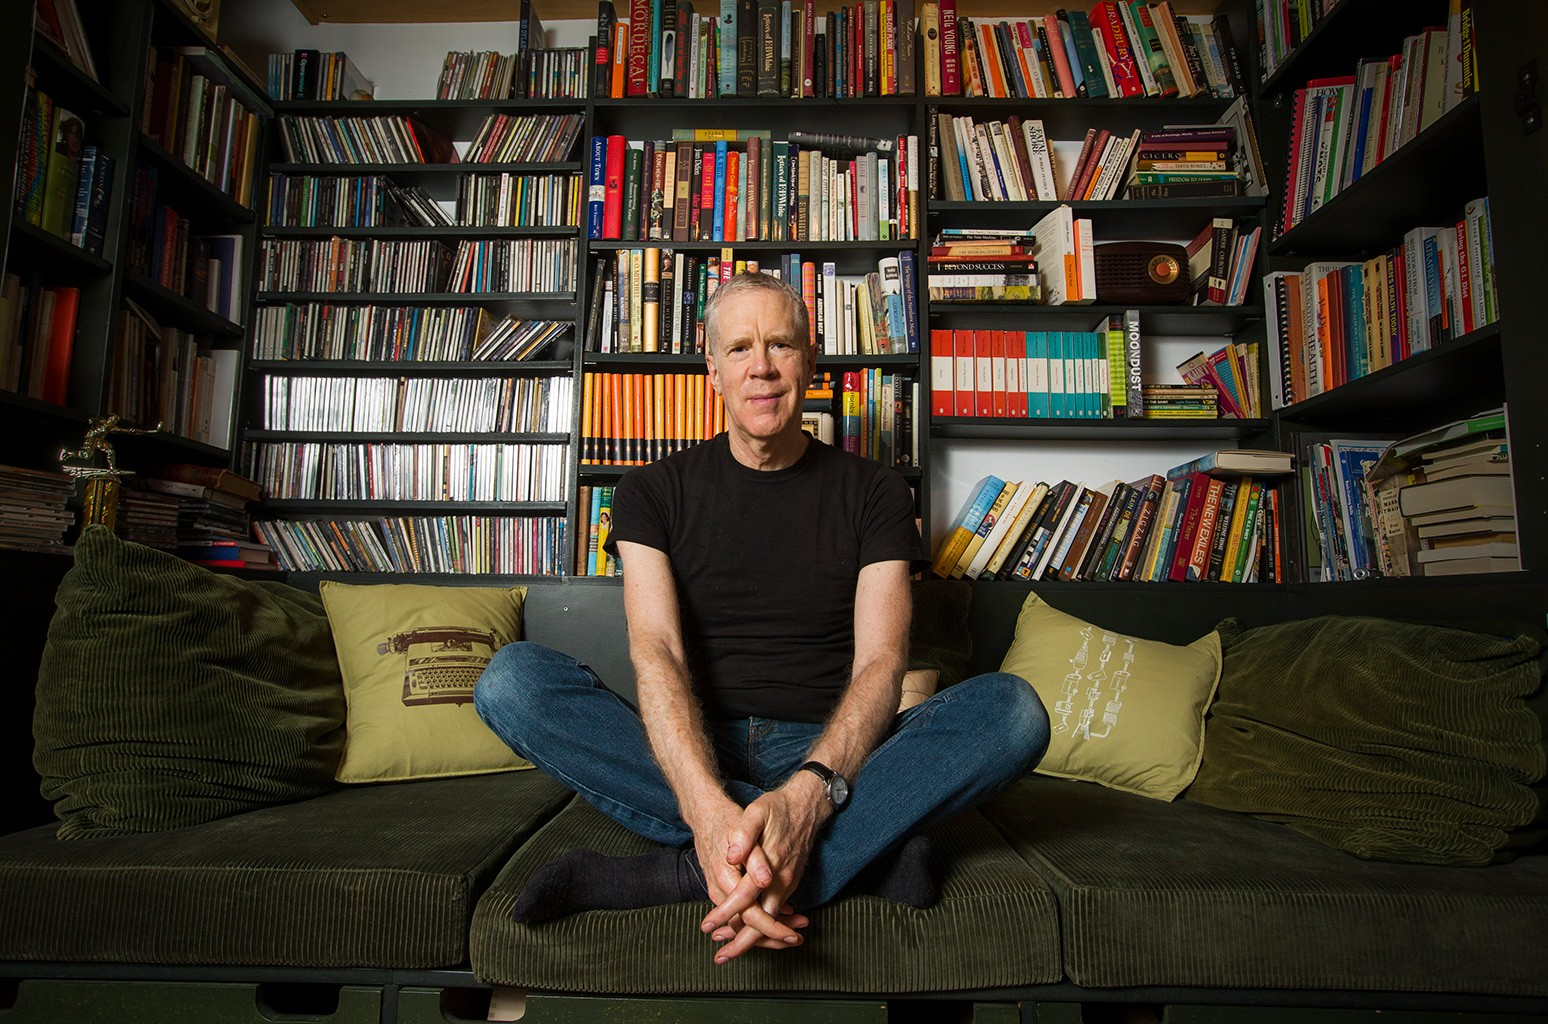 Stuart McLean photographed in his home on Nov. 17, 2013.